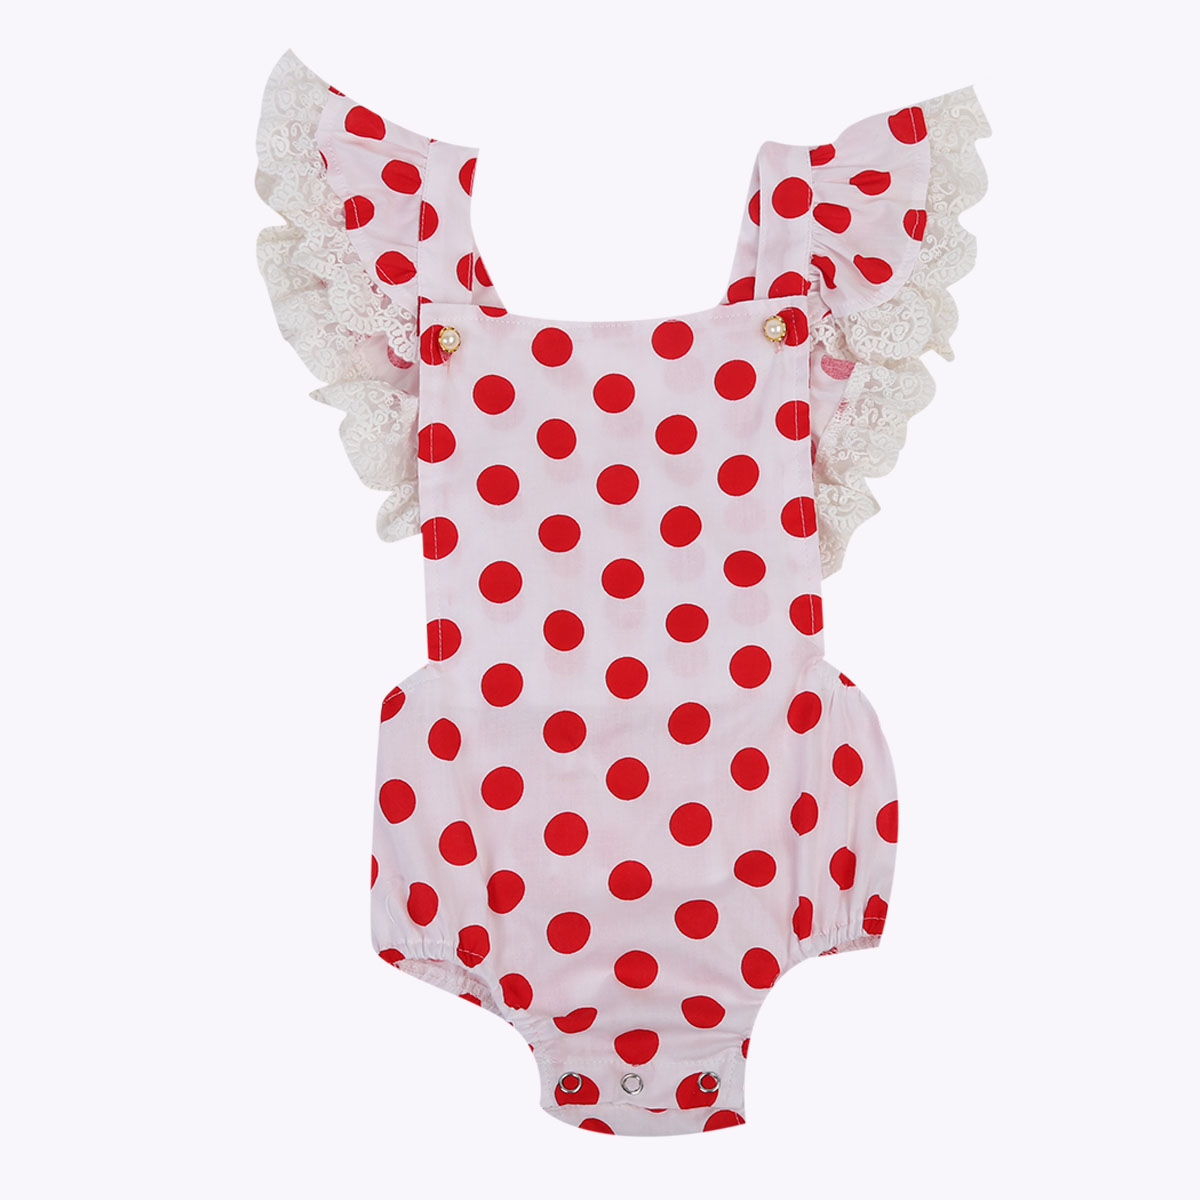 Girls' Baby Clothing Infant Baby Girl Lace Bodysuit Summer Ruffle Sleeve Baby Jumpsuit Overalls Red Dot Baby Clothes 0-24m Superior Performance Mother & Kids